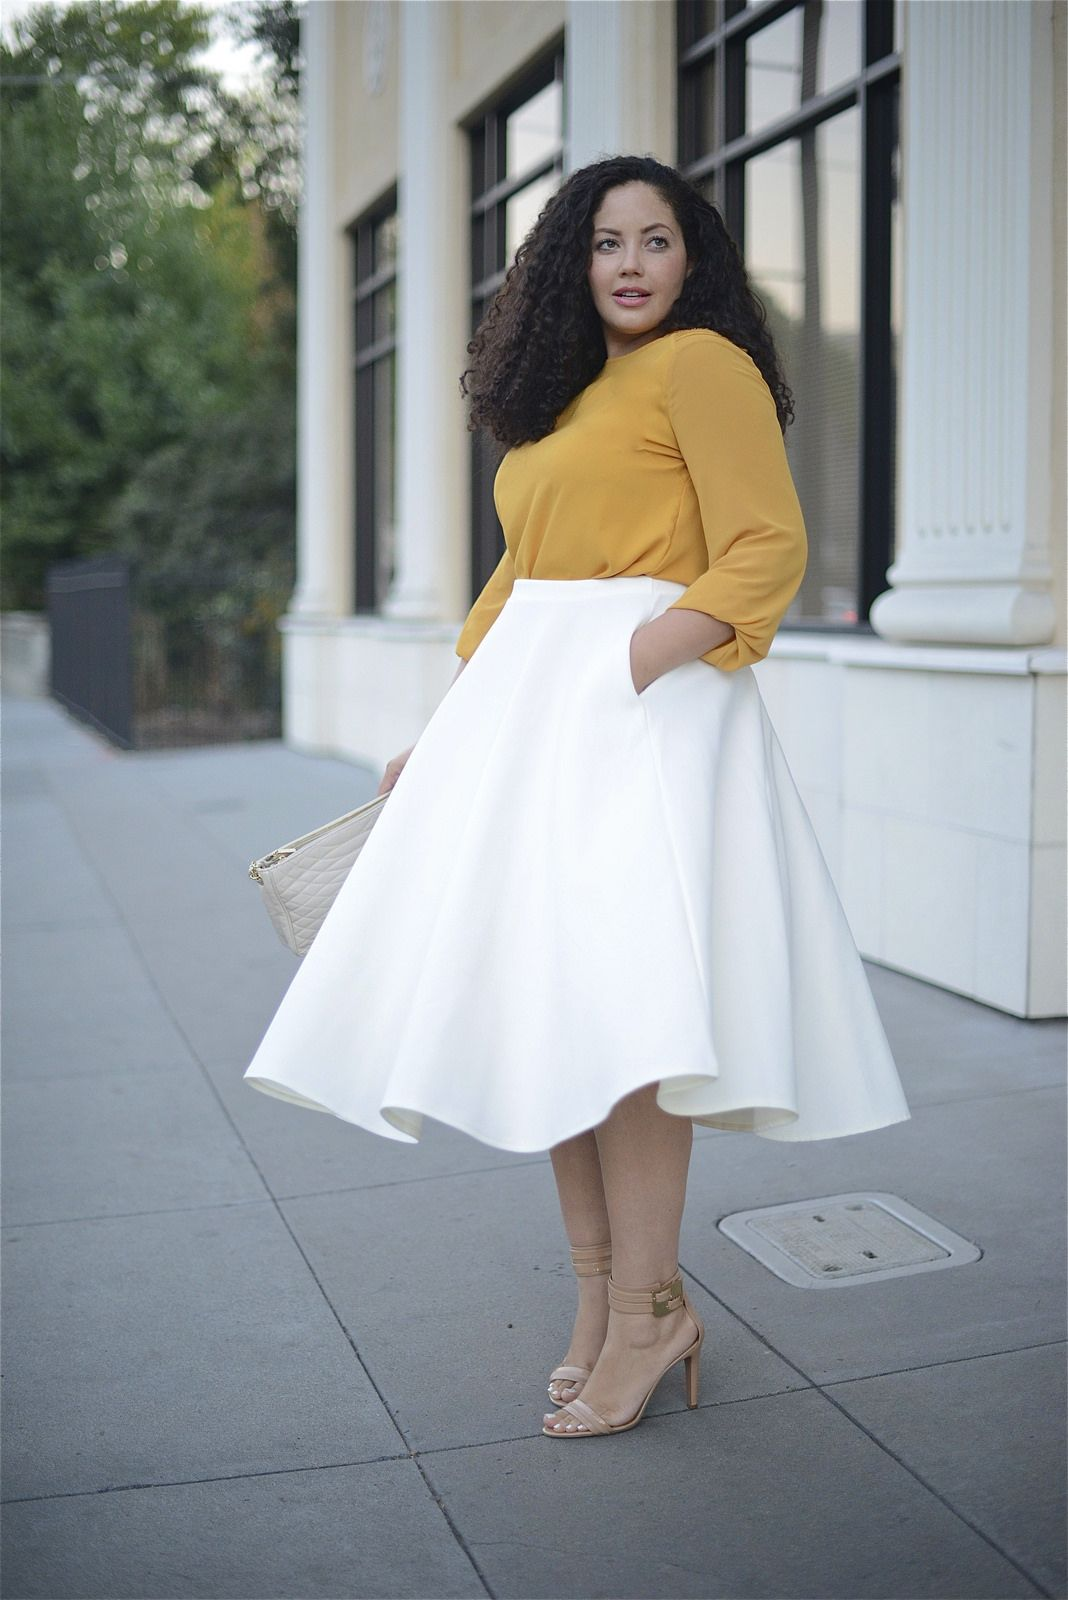 Sometimes all it takes is a good twirl to brighten the mood.    Outfit  Details    Top    H M (love this mustard sweater in +) Skirt    Asos  (similar he 0f9a6830eae